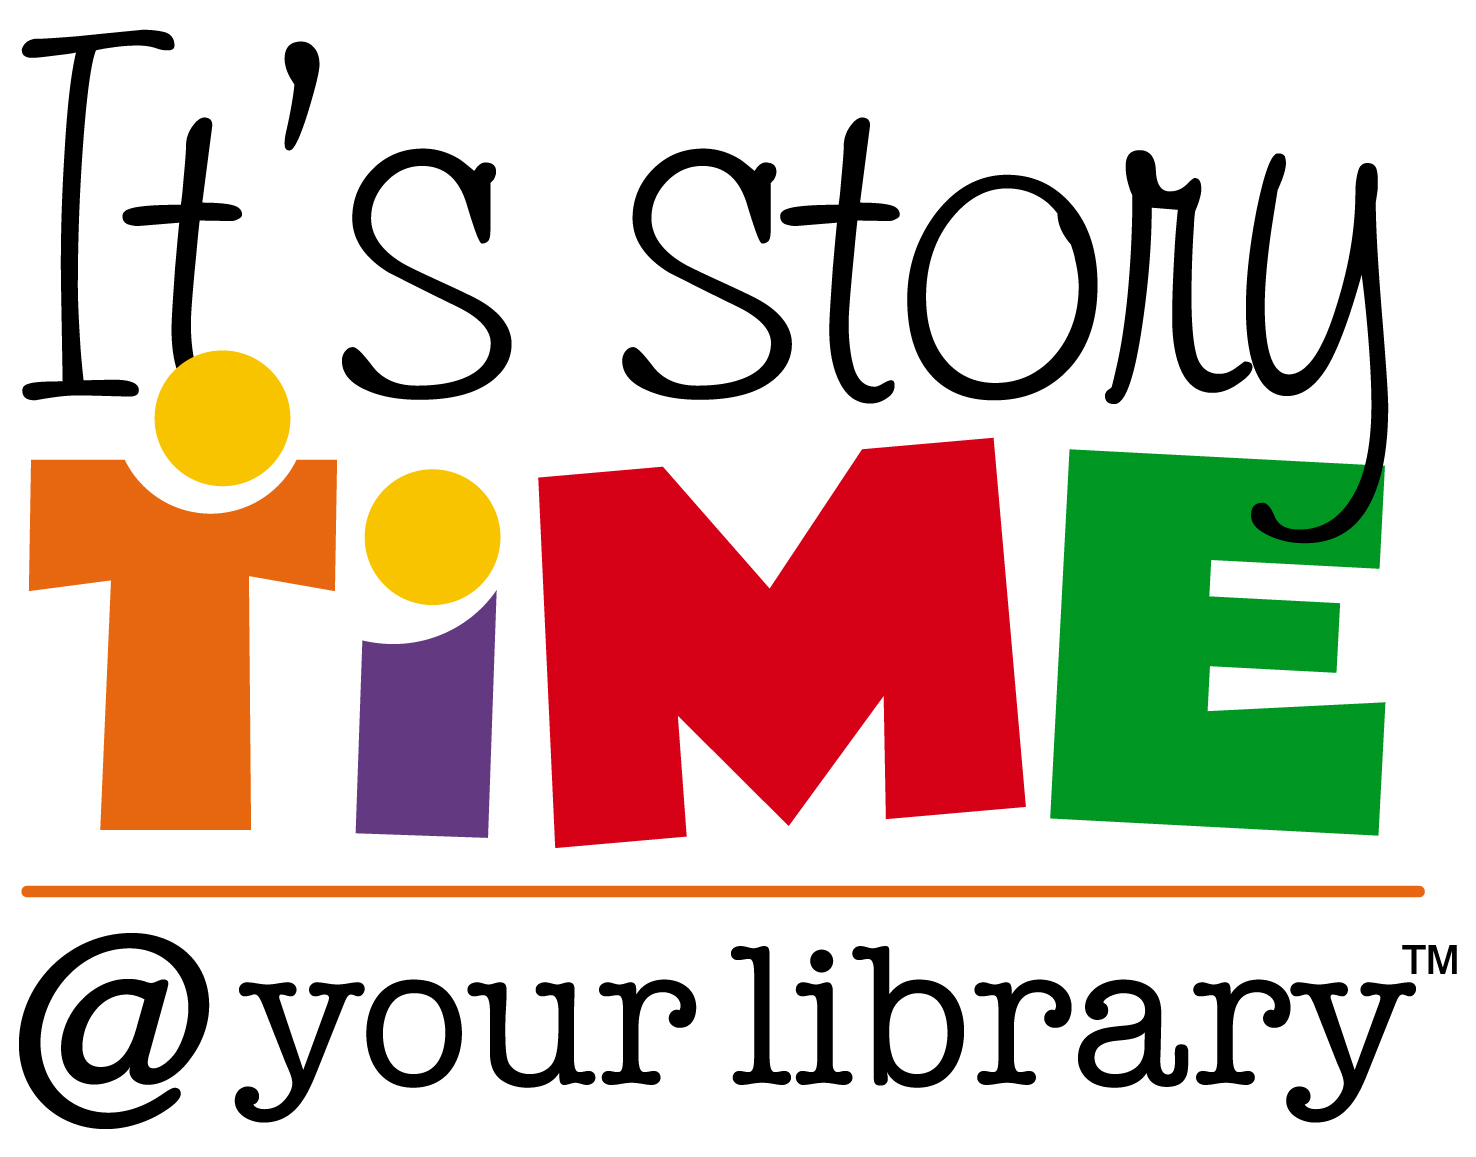 Clipart of the storytime at your library free image